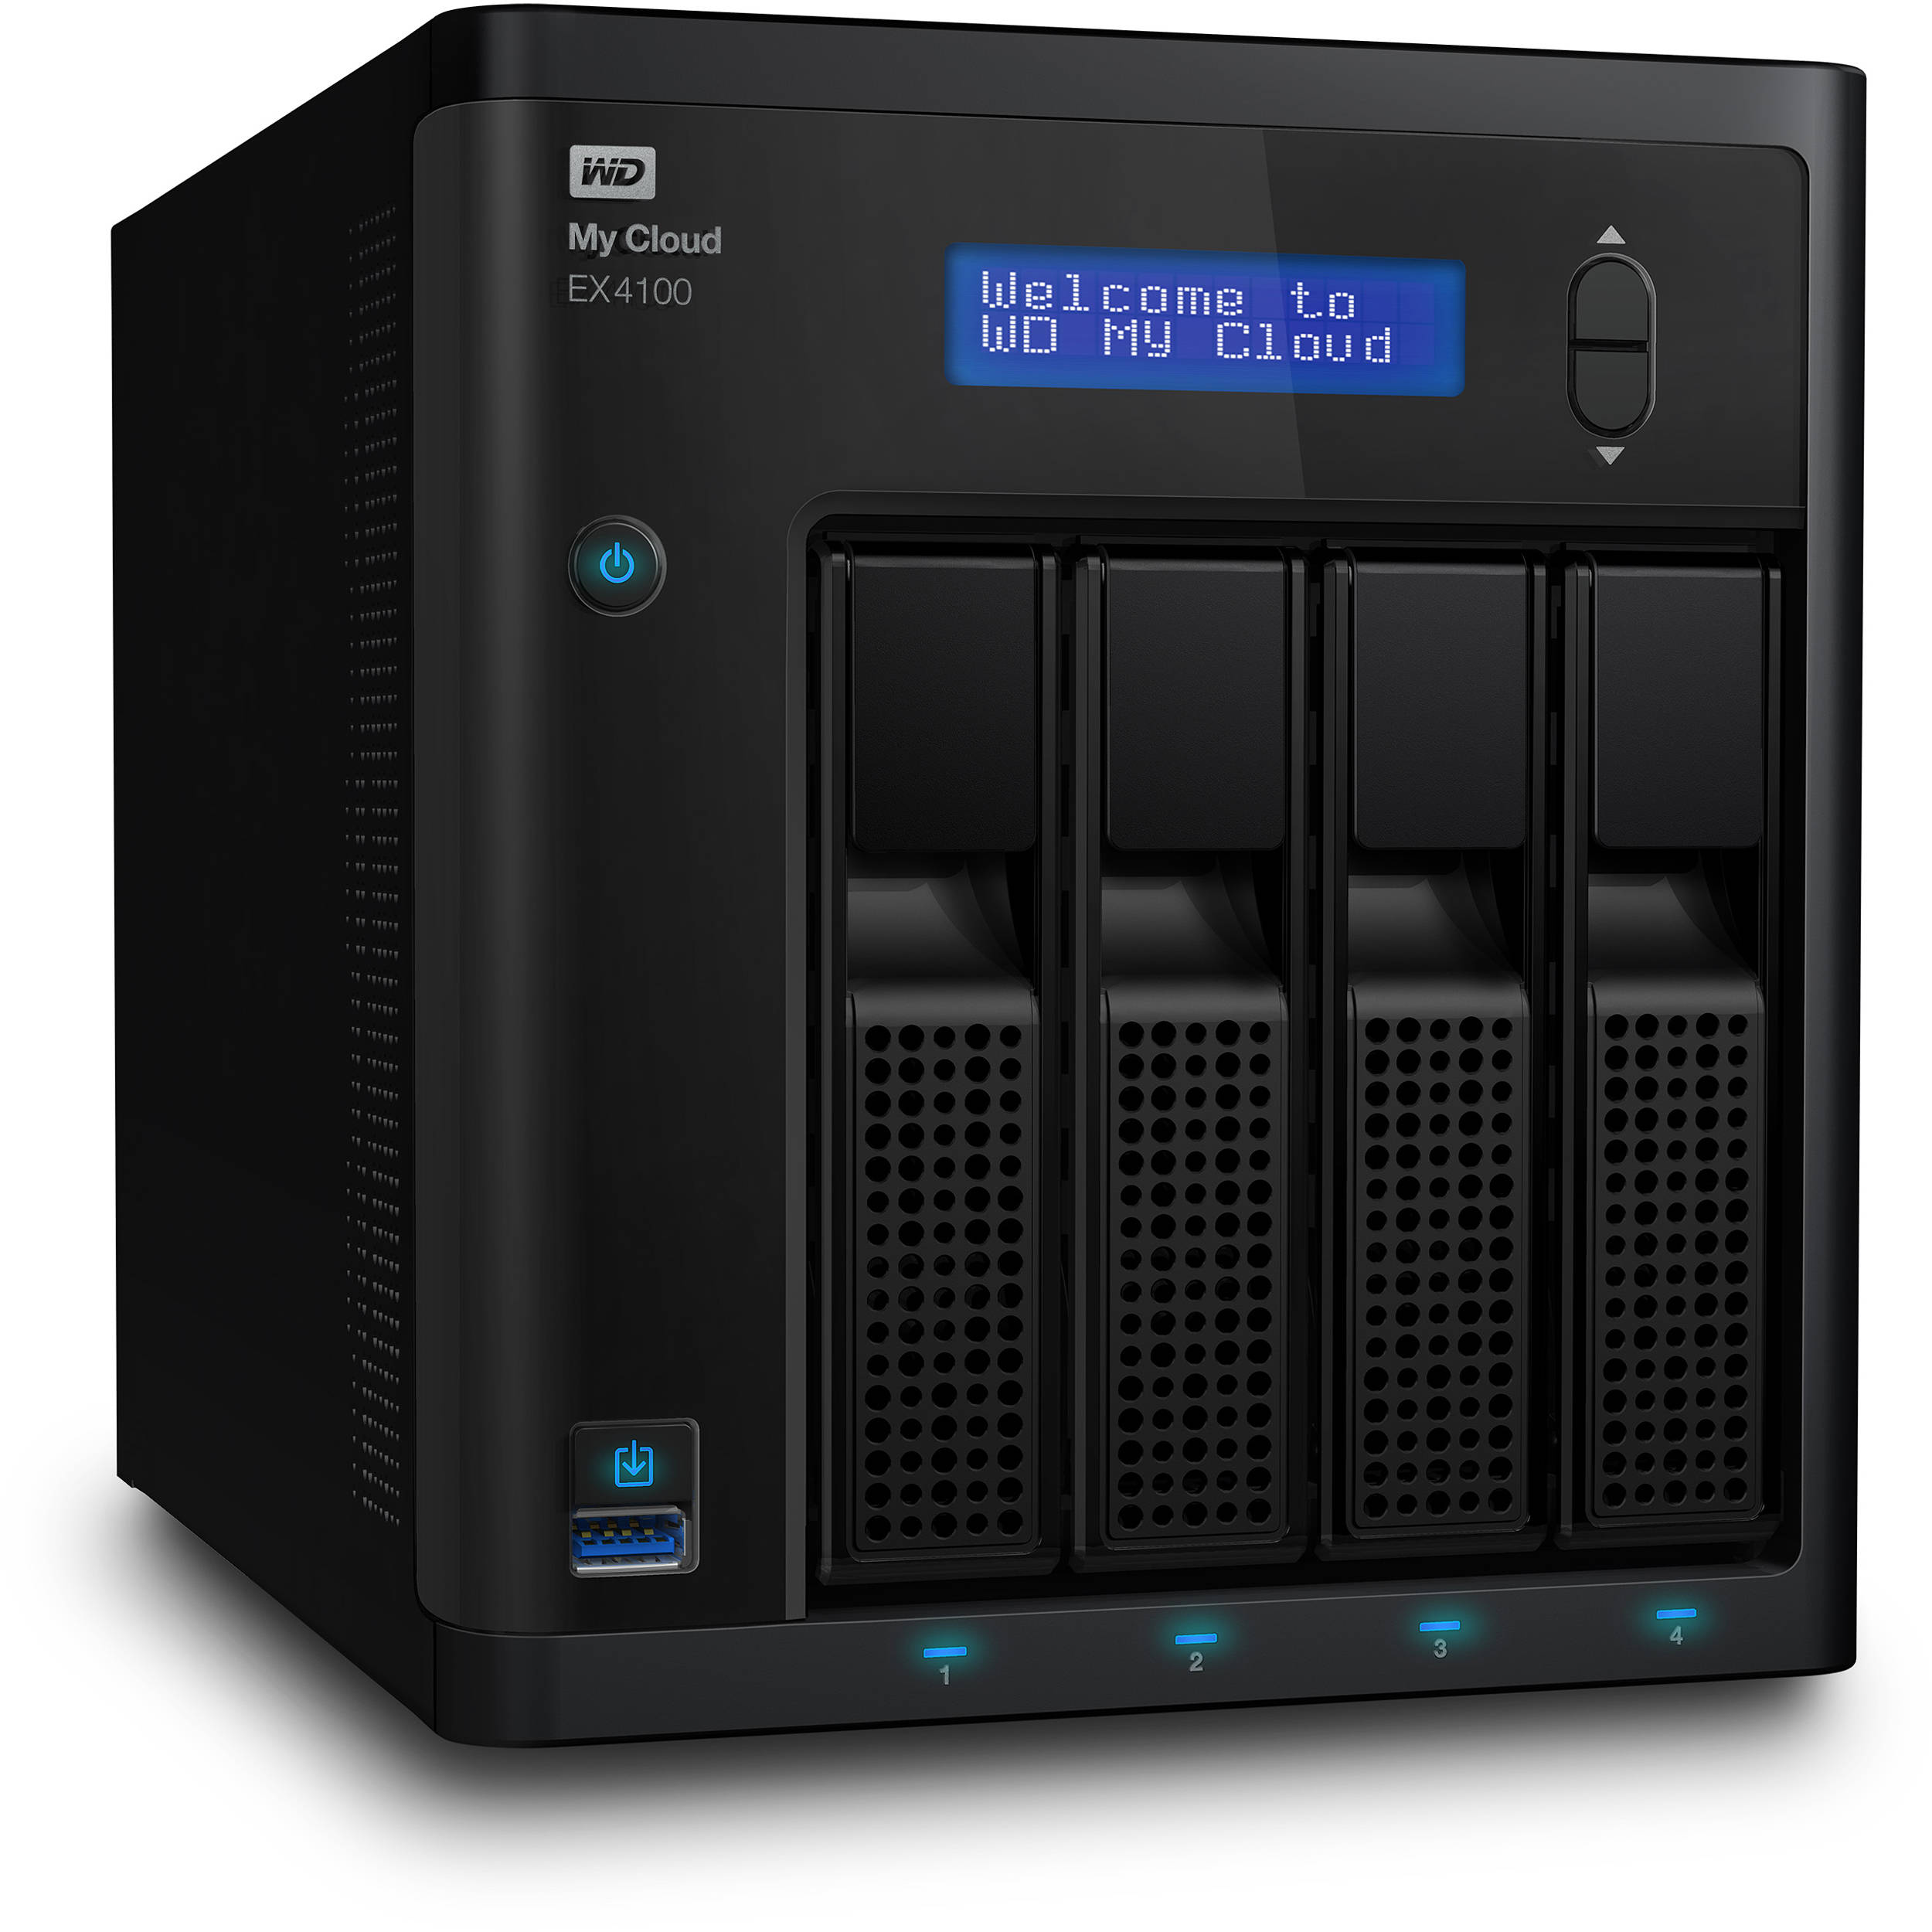 Wd My Cloud Expert Series Ex4100 16tb 4 Bay Wdbwze0160kbk Nesn